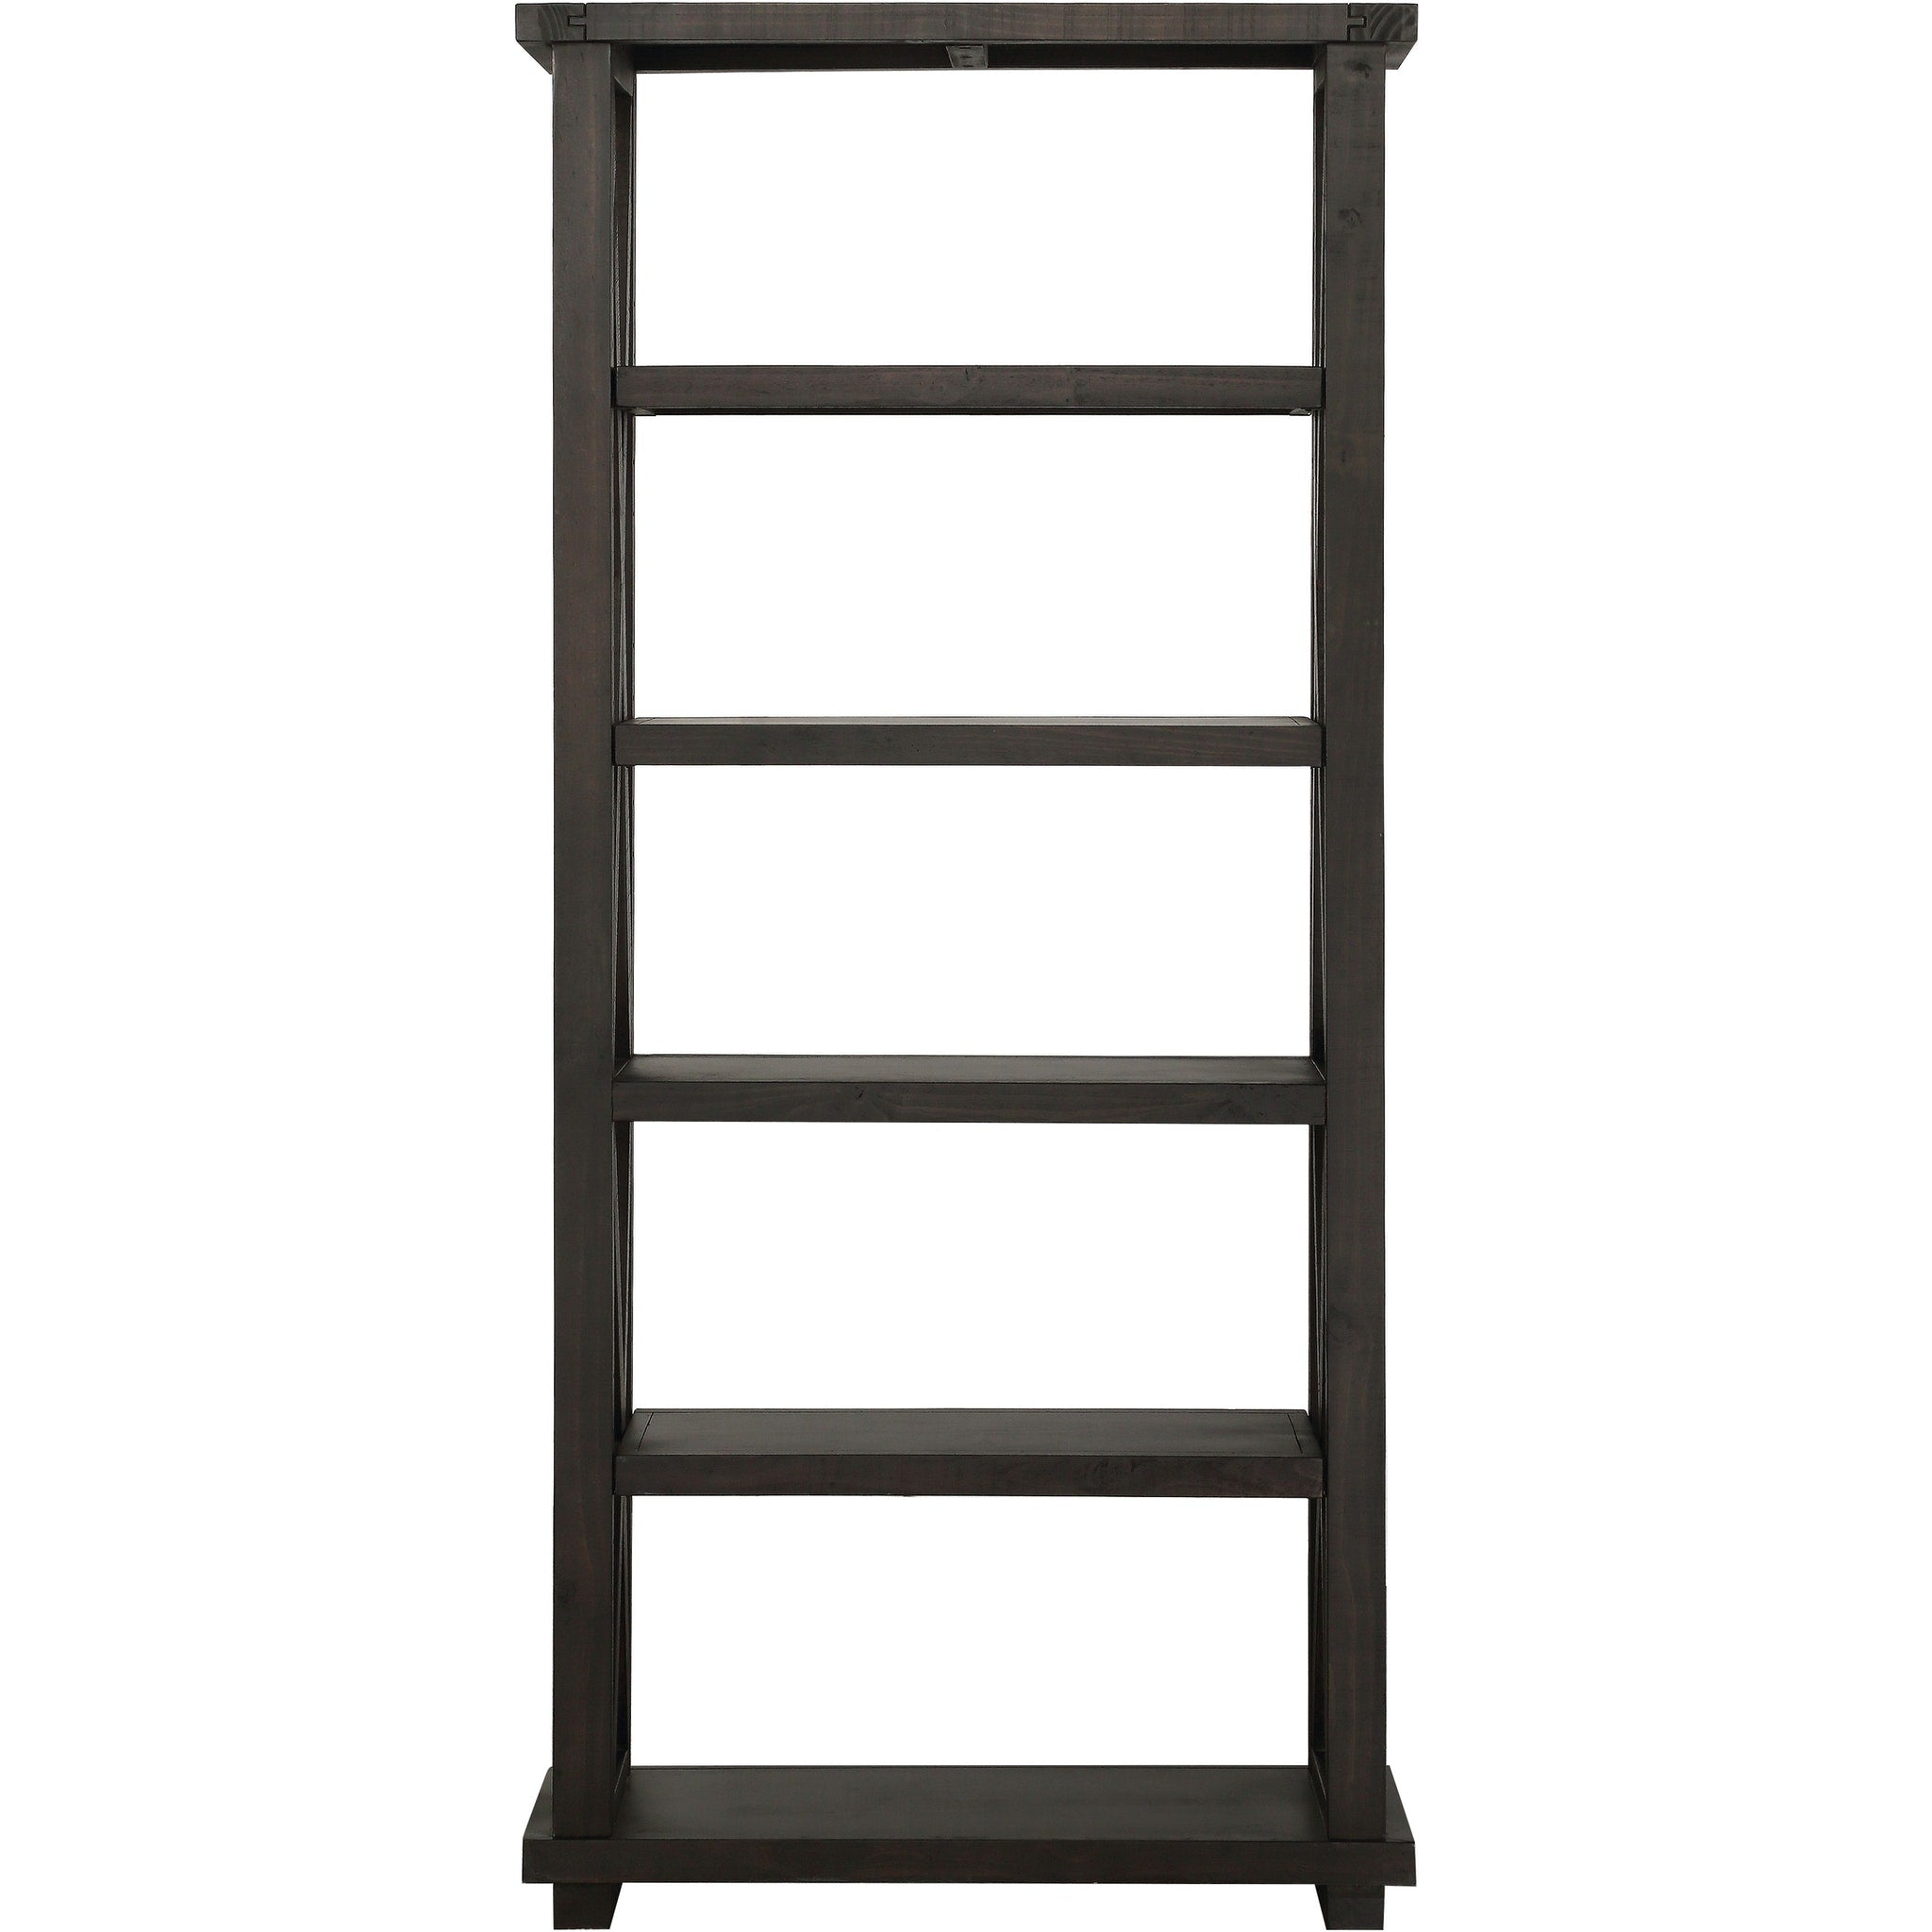 "Yosemite Solid Wood 82x39"" Bookshelf in Café"